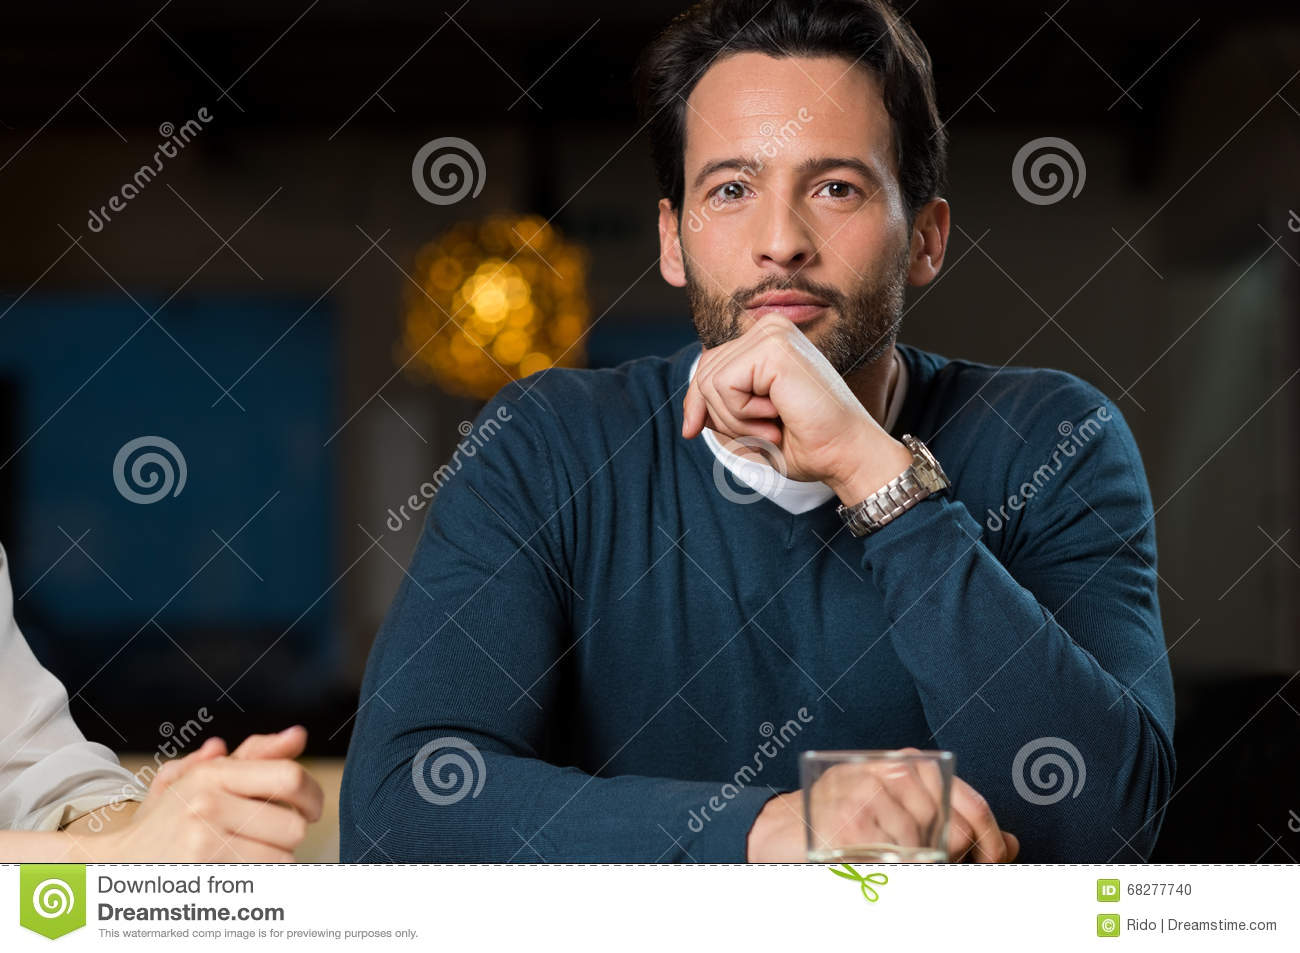 Satisfied man stock photo. Image of confident, imagination